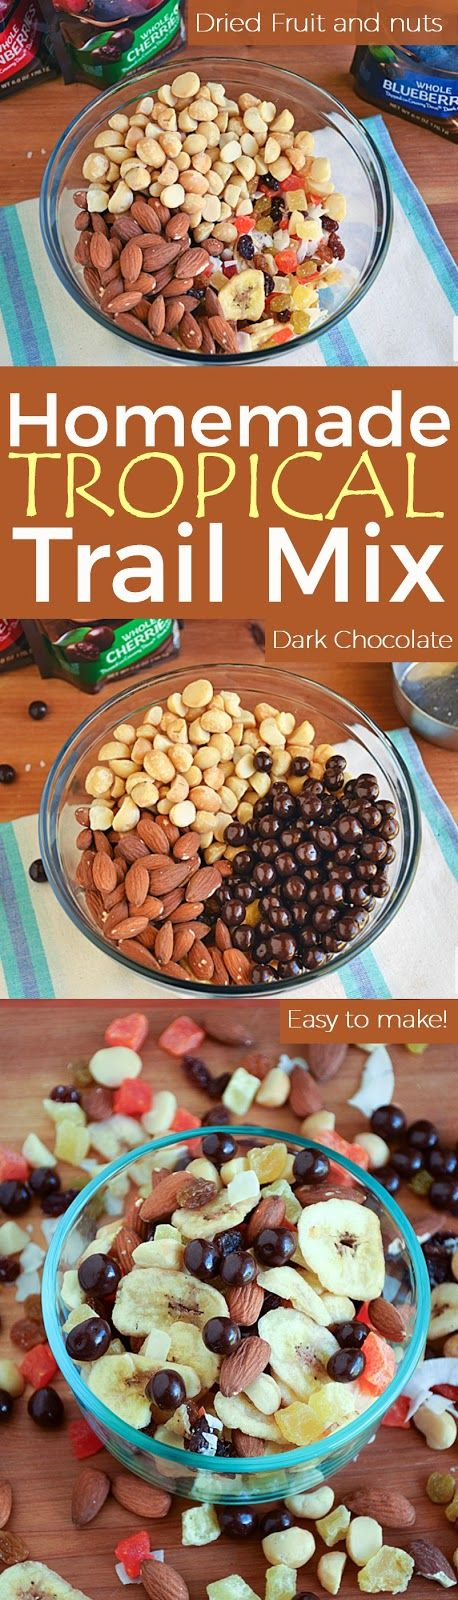 Homemade Tropical Trail Mix | by Life Tastes Good loaded with dried fruit, nuts, and dark chocolate is a better-for-you choice when you reach for a snack during the day. #LoveDoveFruits #Ad